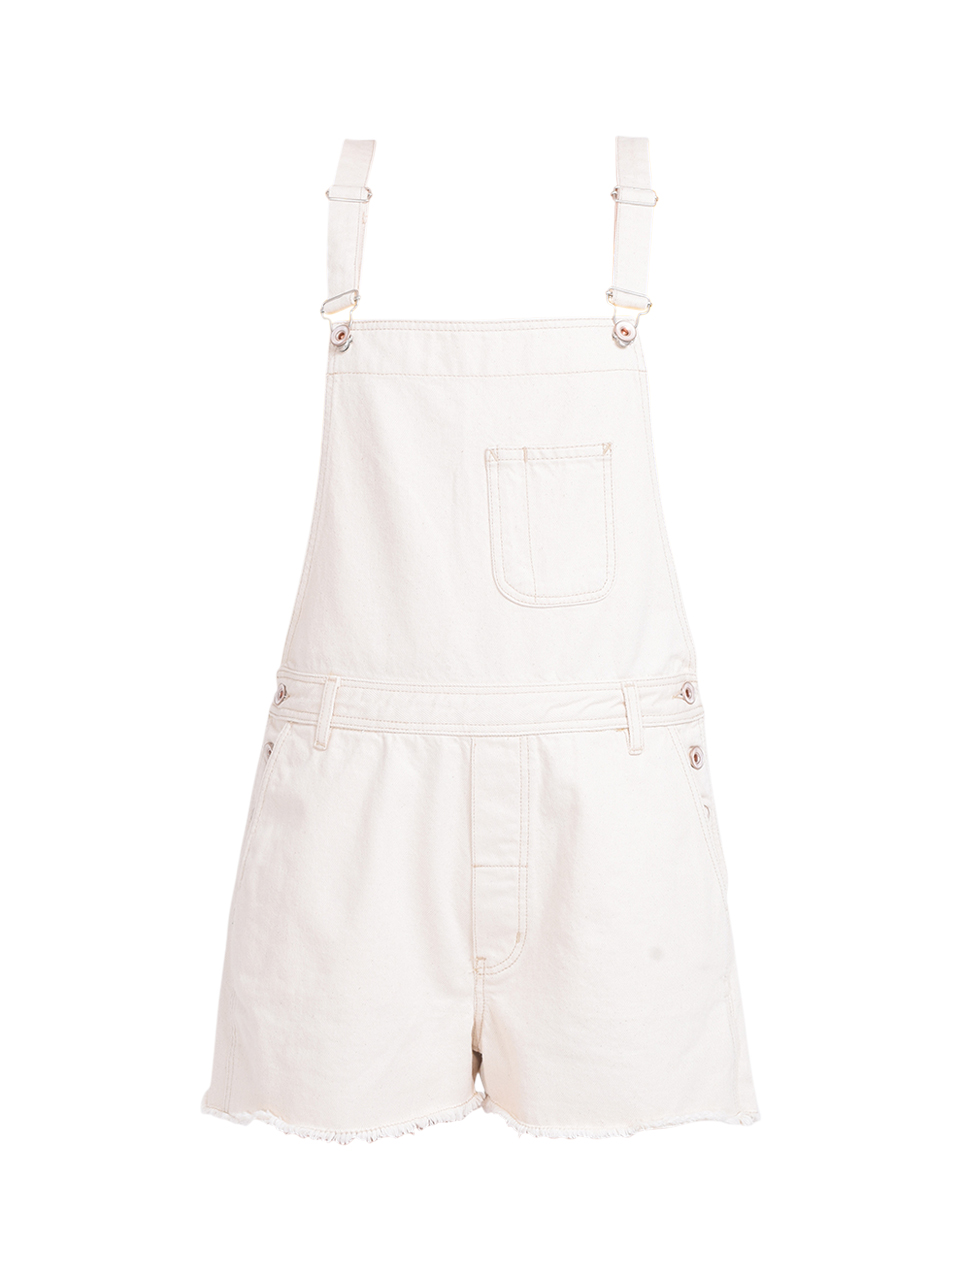 Bellerose Pachita Overall Shorts in Natural Product Shot